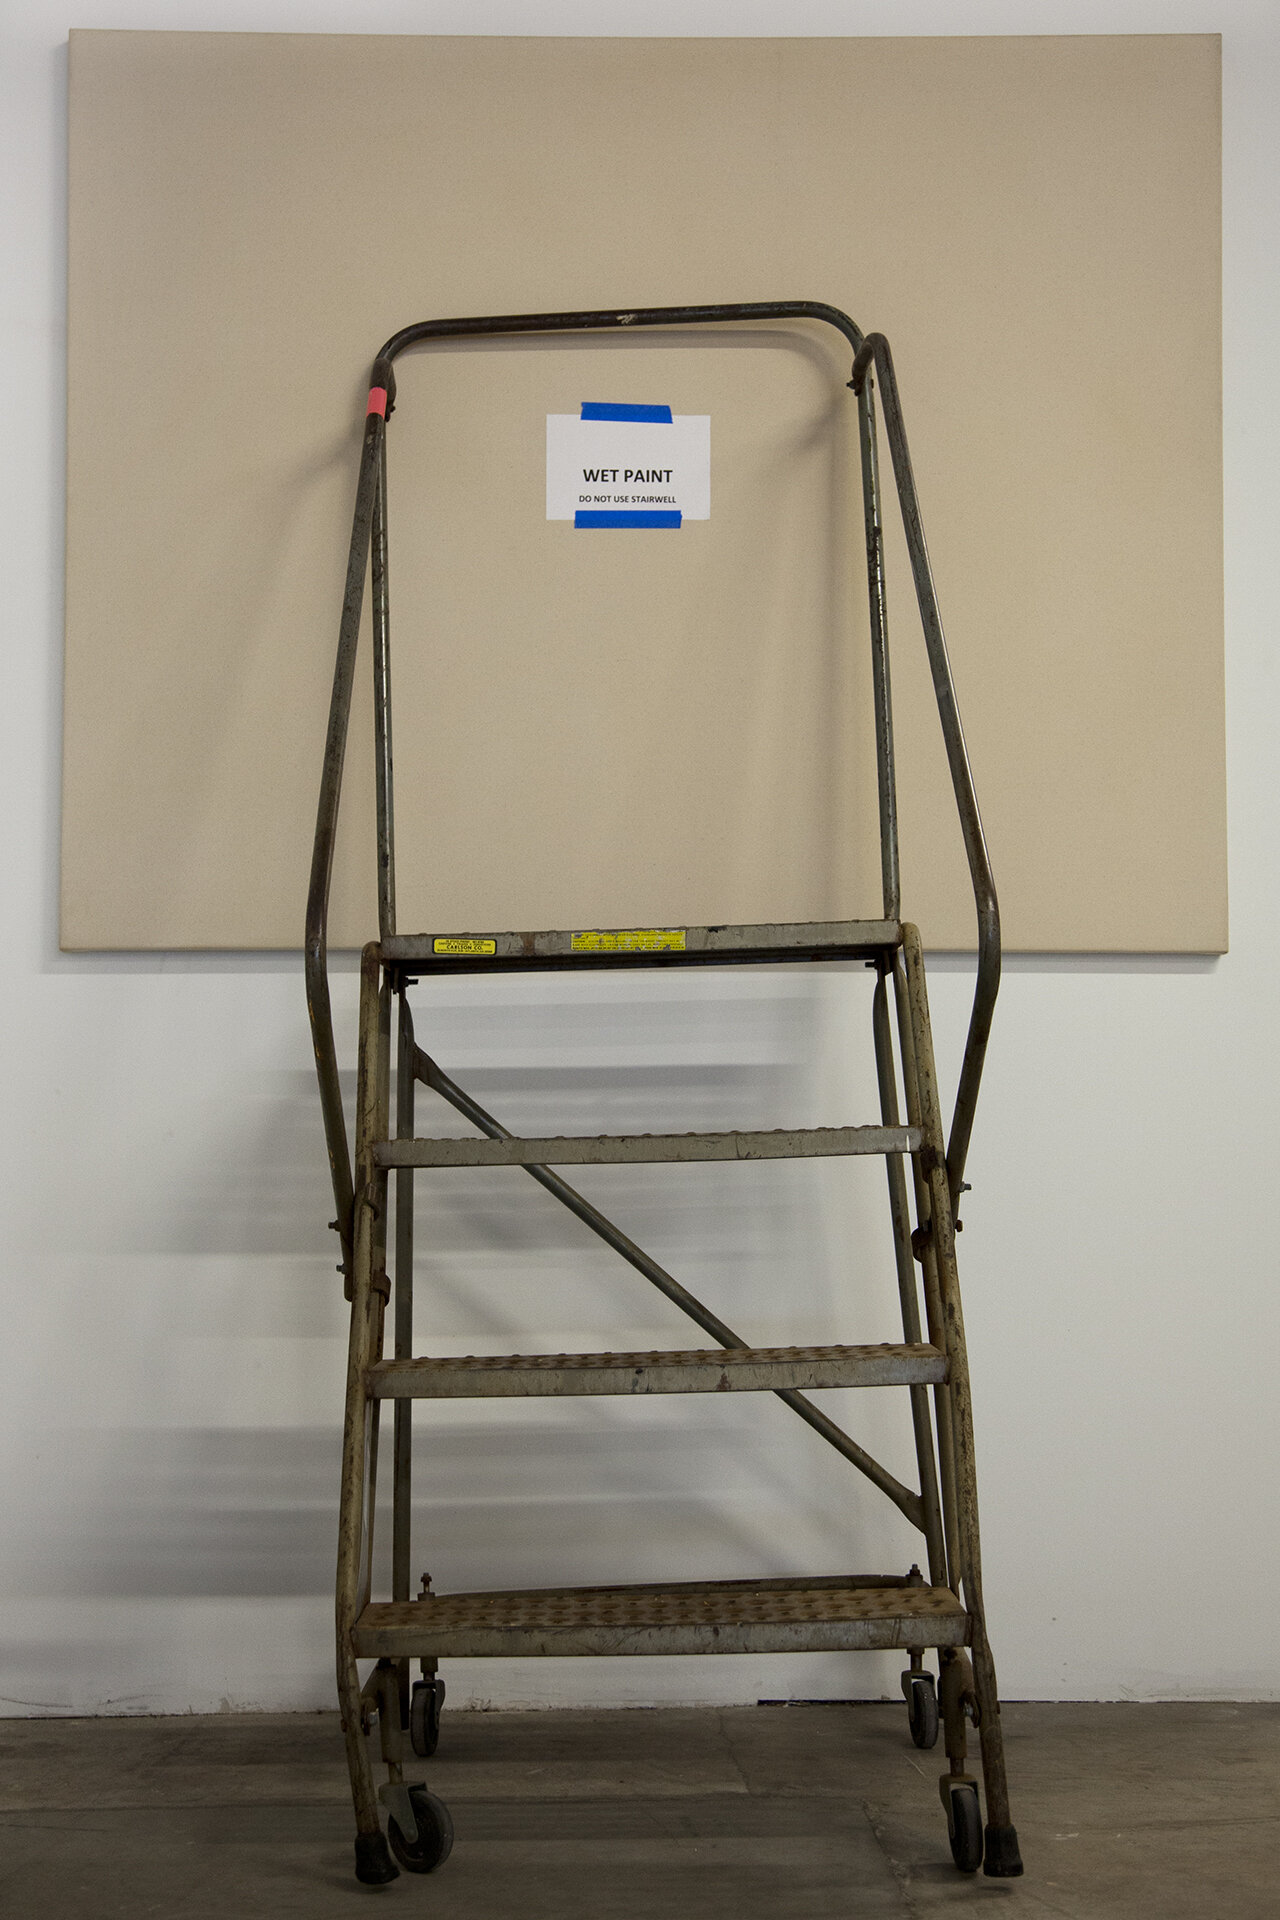 Wet Paint [Do Not Use Stairwell],  2015, paper, ink, painter's tape on canvas, step ladder, 48 x 60 inches.